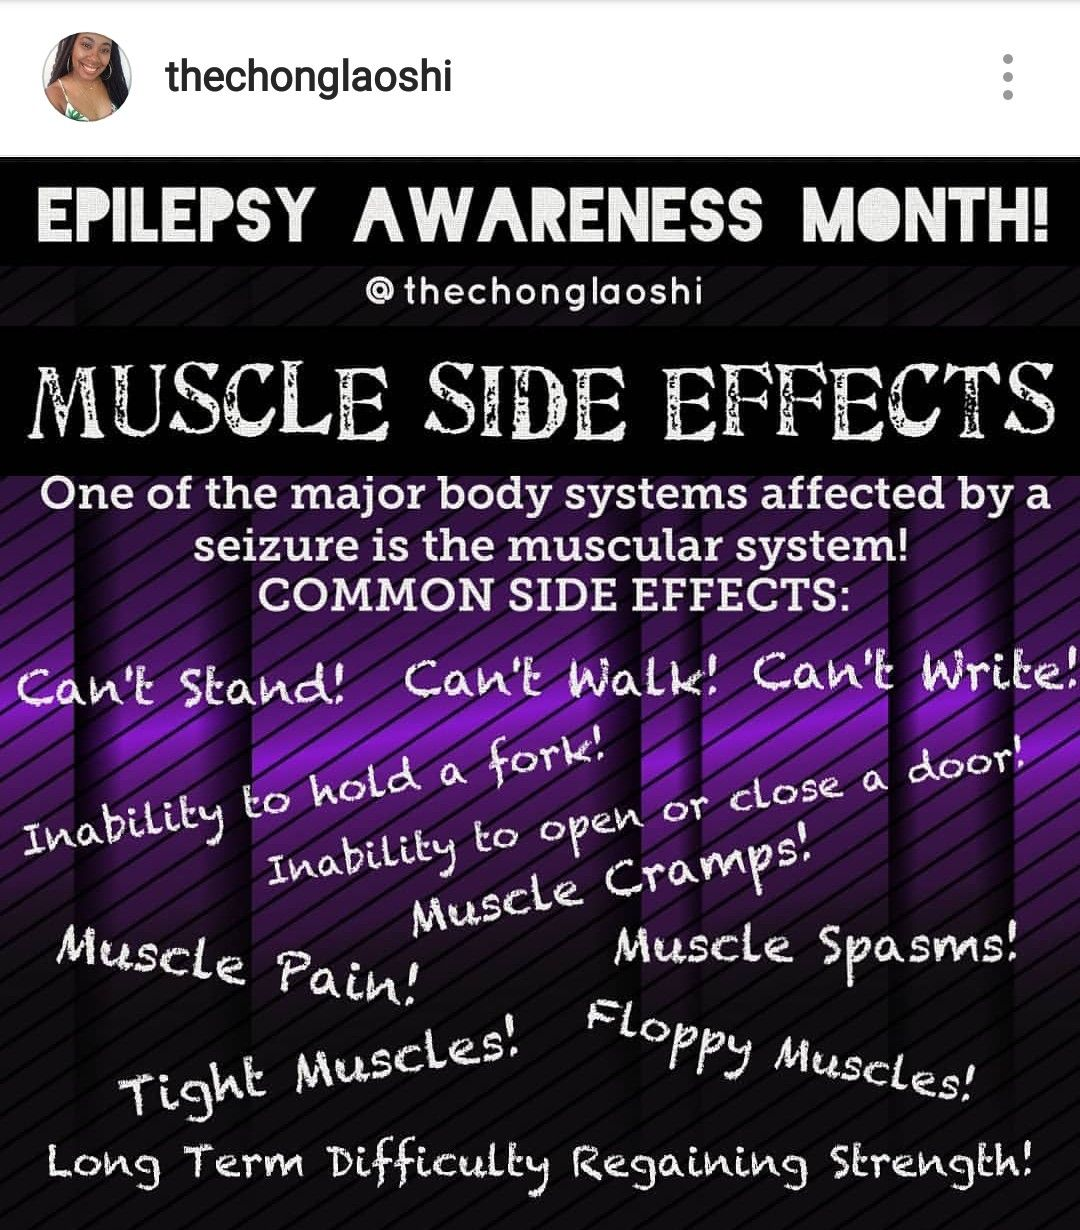 Muscle Side Effects Epilepsy Awareness Quotes Epilepsy Facts Epilepsy